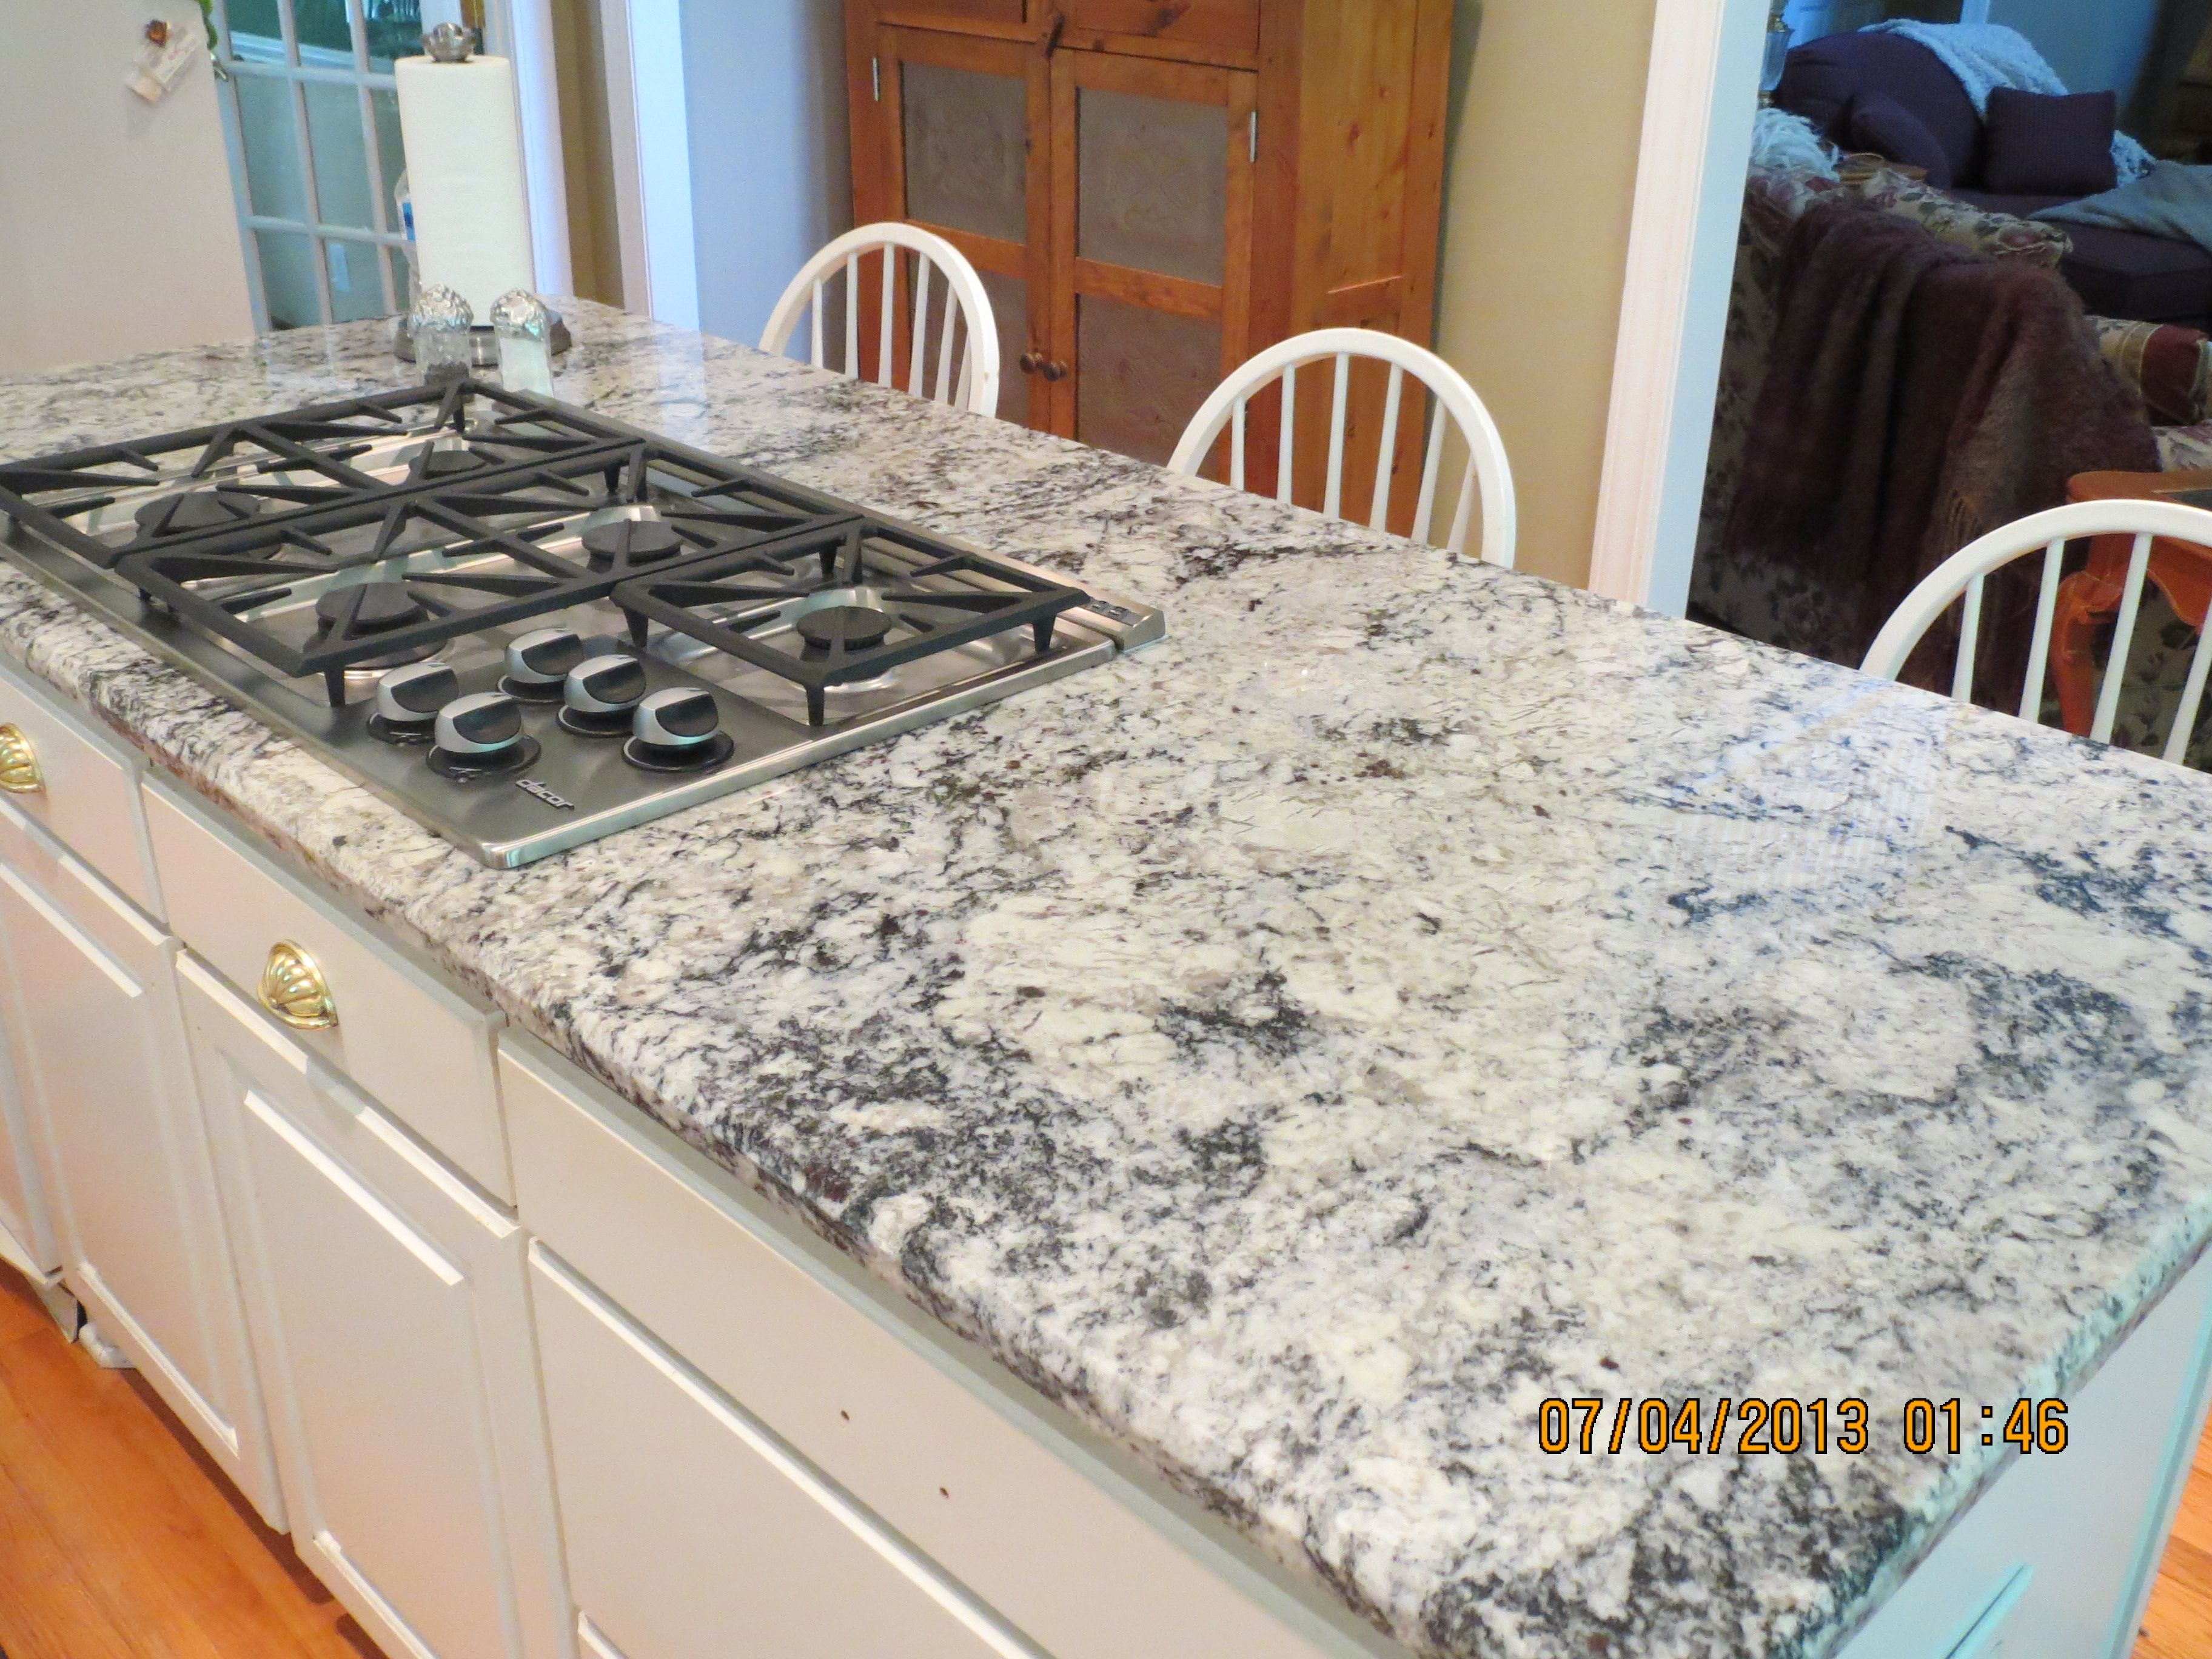 Carolina White granite from World Stone Distributors installed by